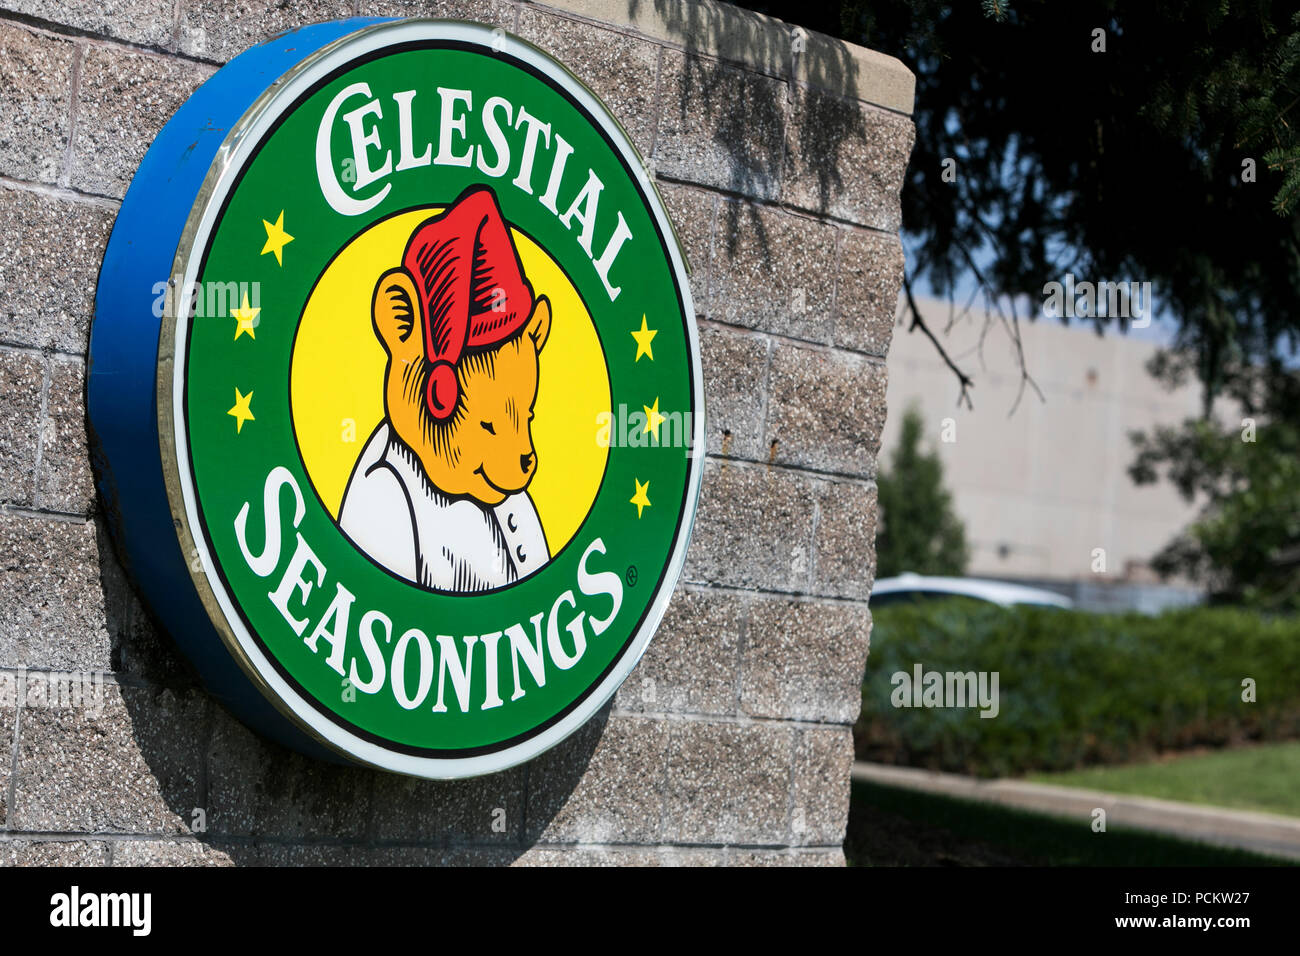 A logo sign outside of the headquarters of Celestial Seasonings in Boulder, Colorado, on July 21, 2018. - Stock Image